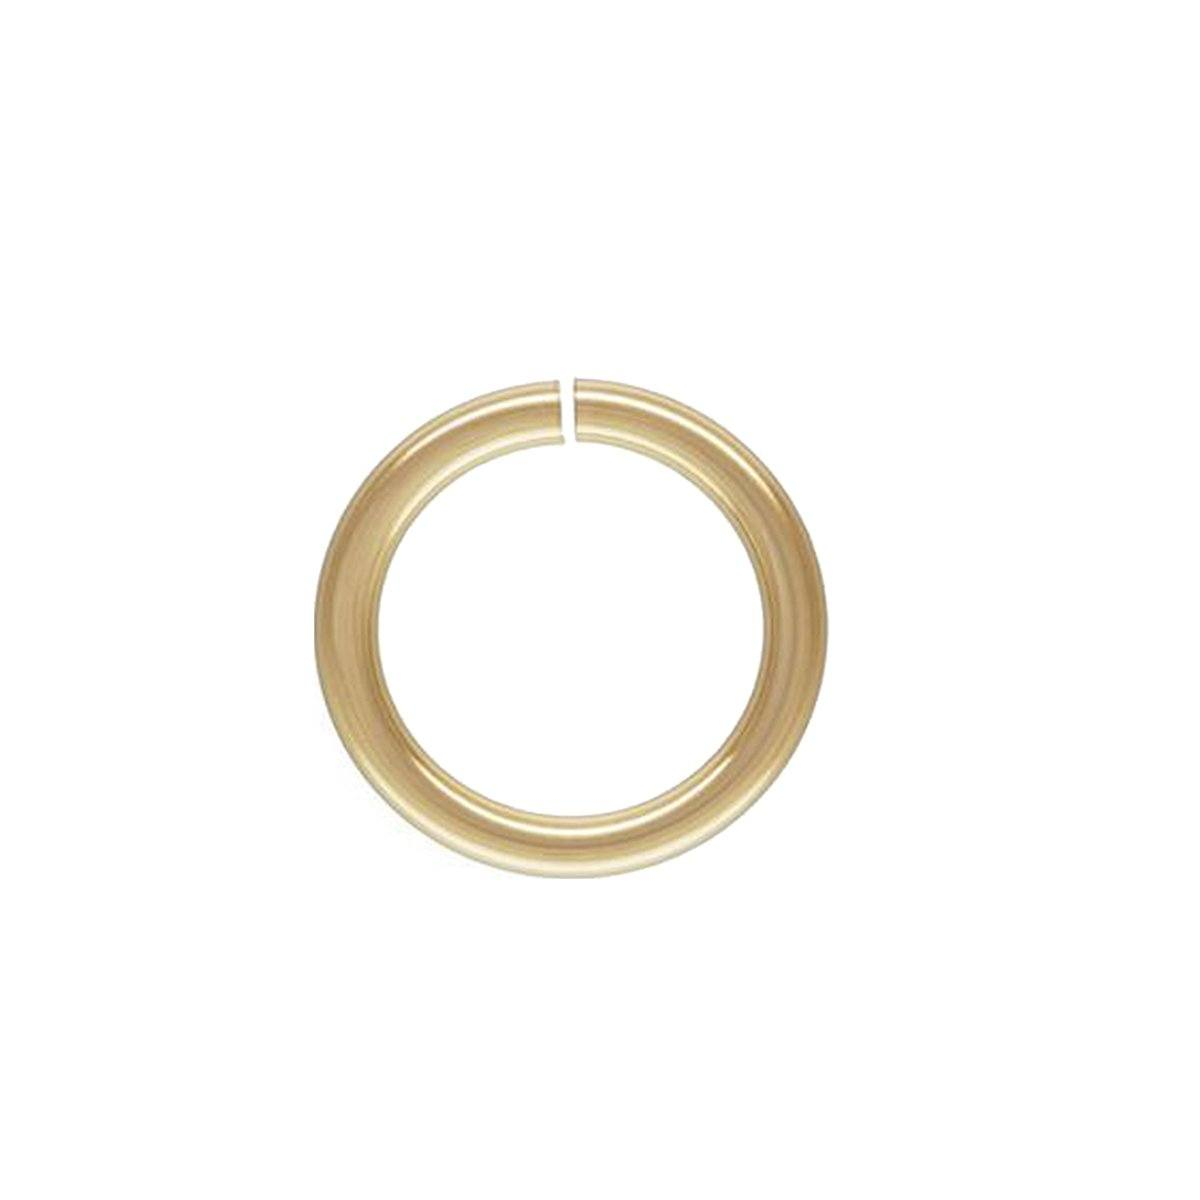 18K Gold Overlay Twisted Jump Ring Open JOG-102-6MM